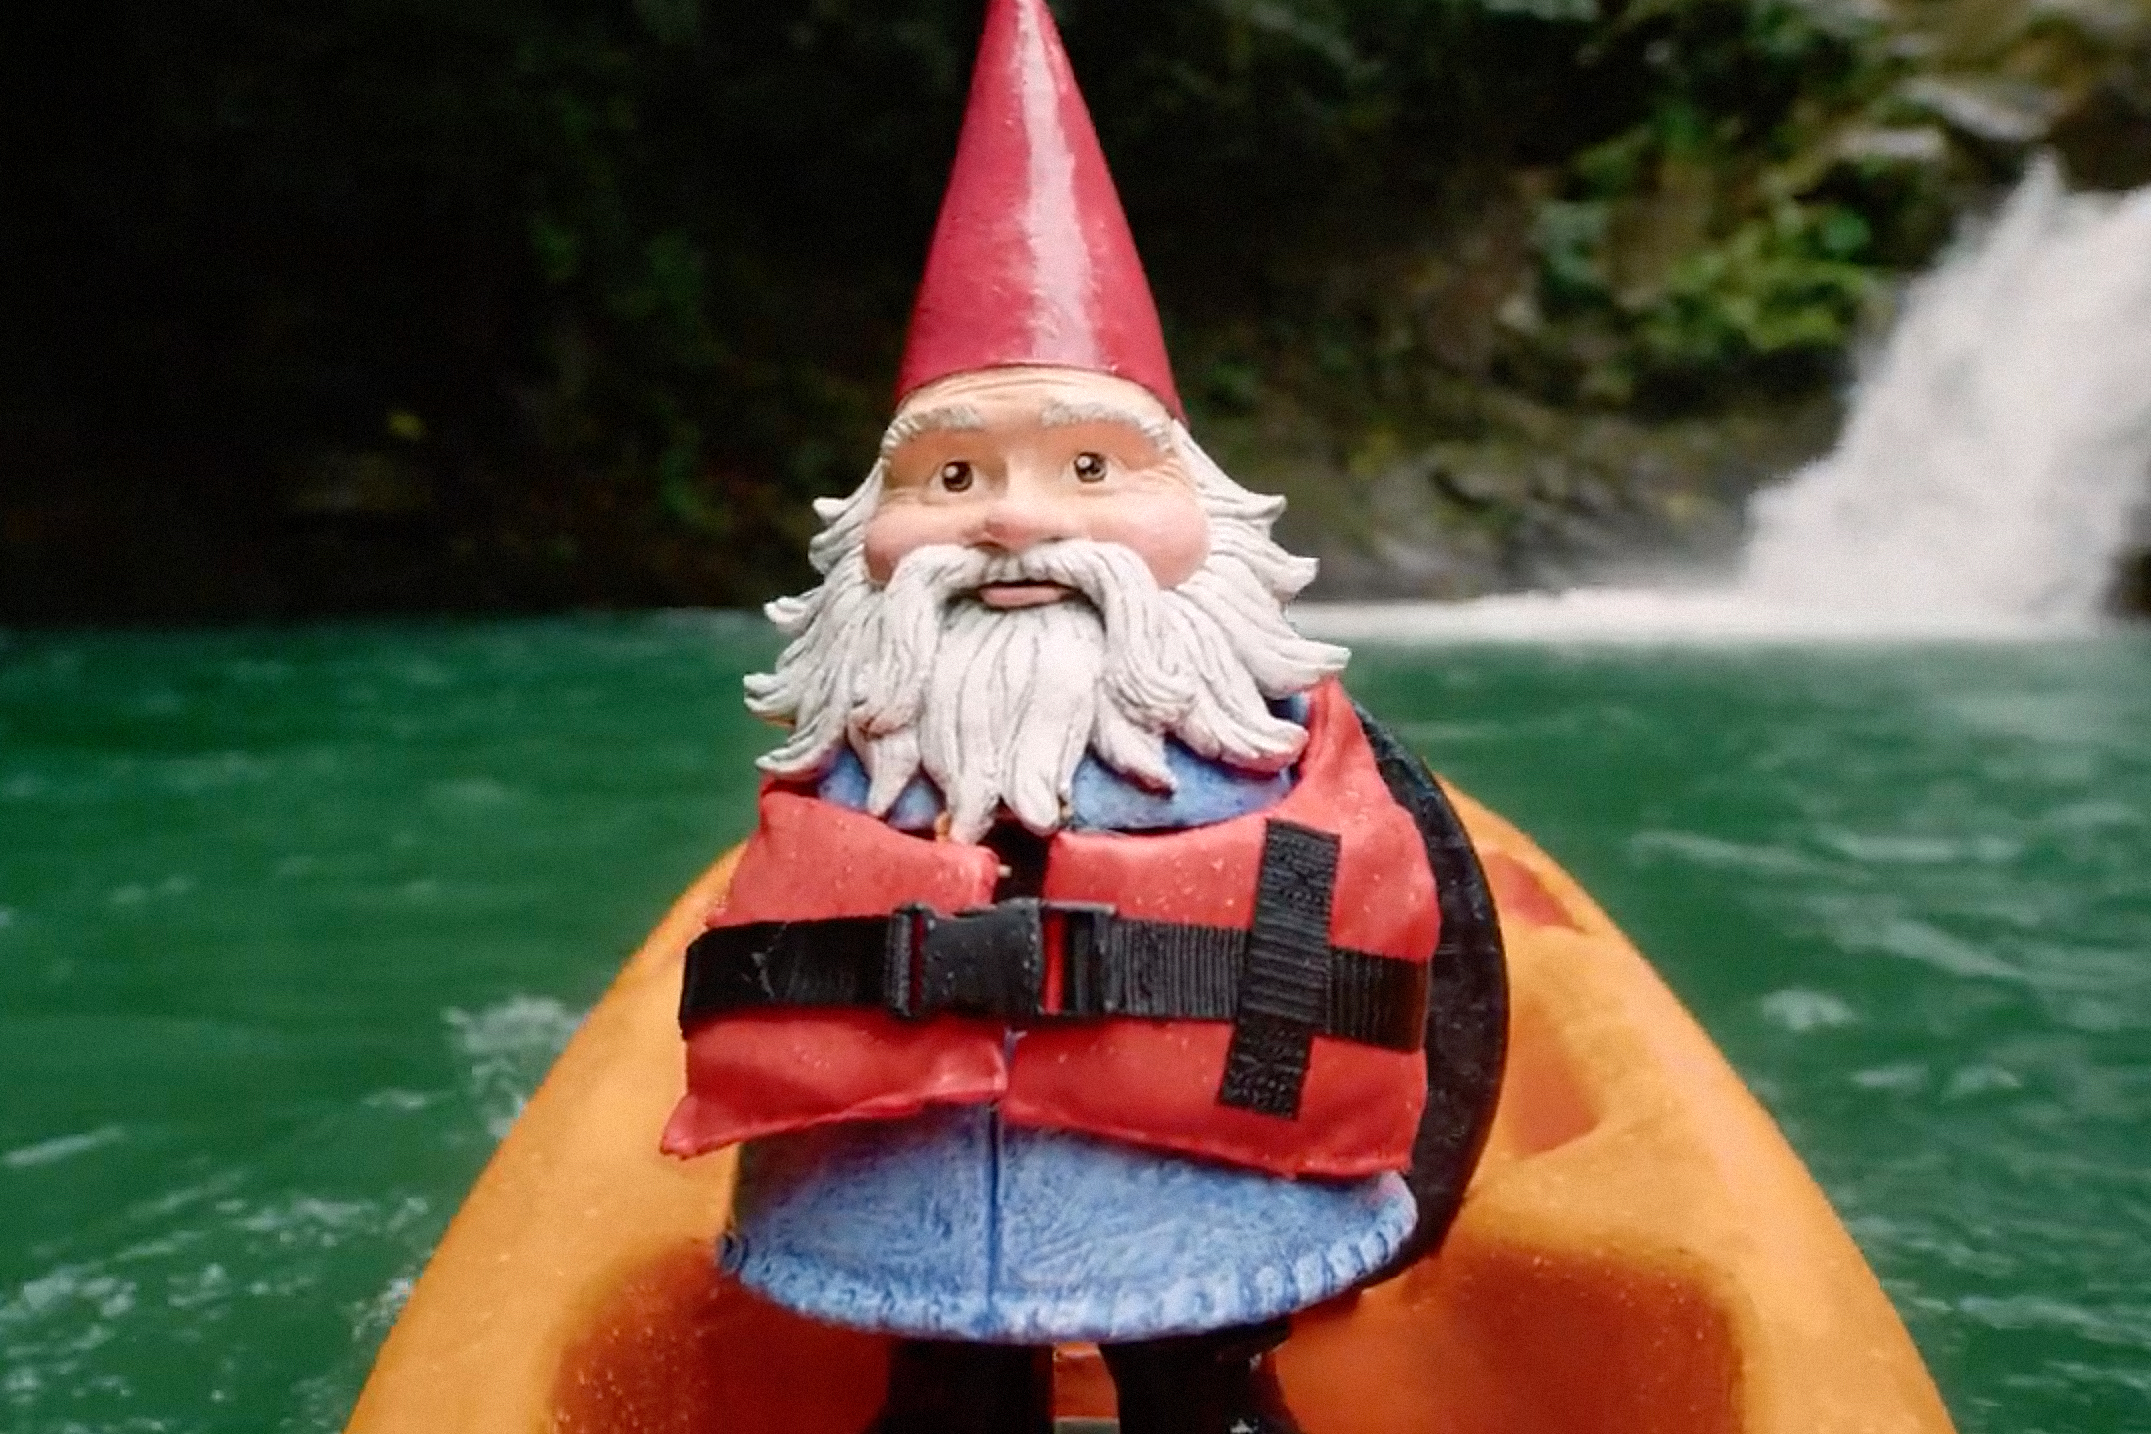 There's no place like gnome in Travelocity's first campaign from new AOR